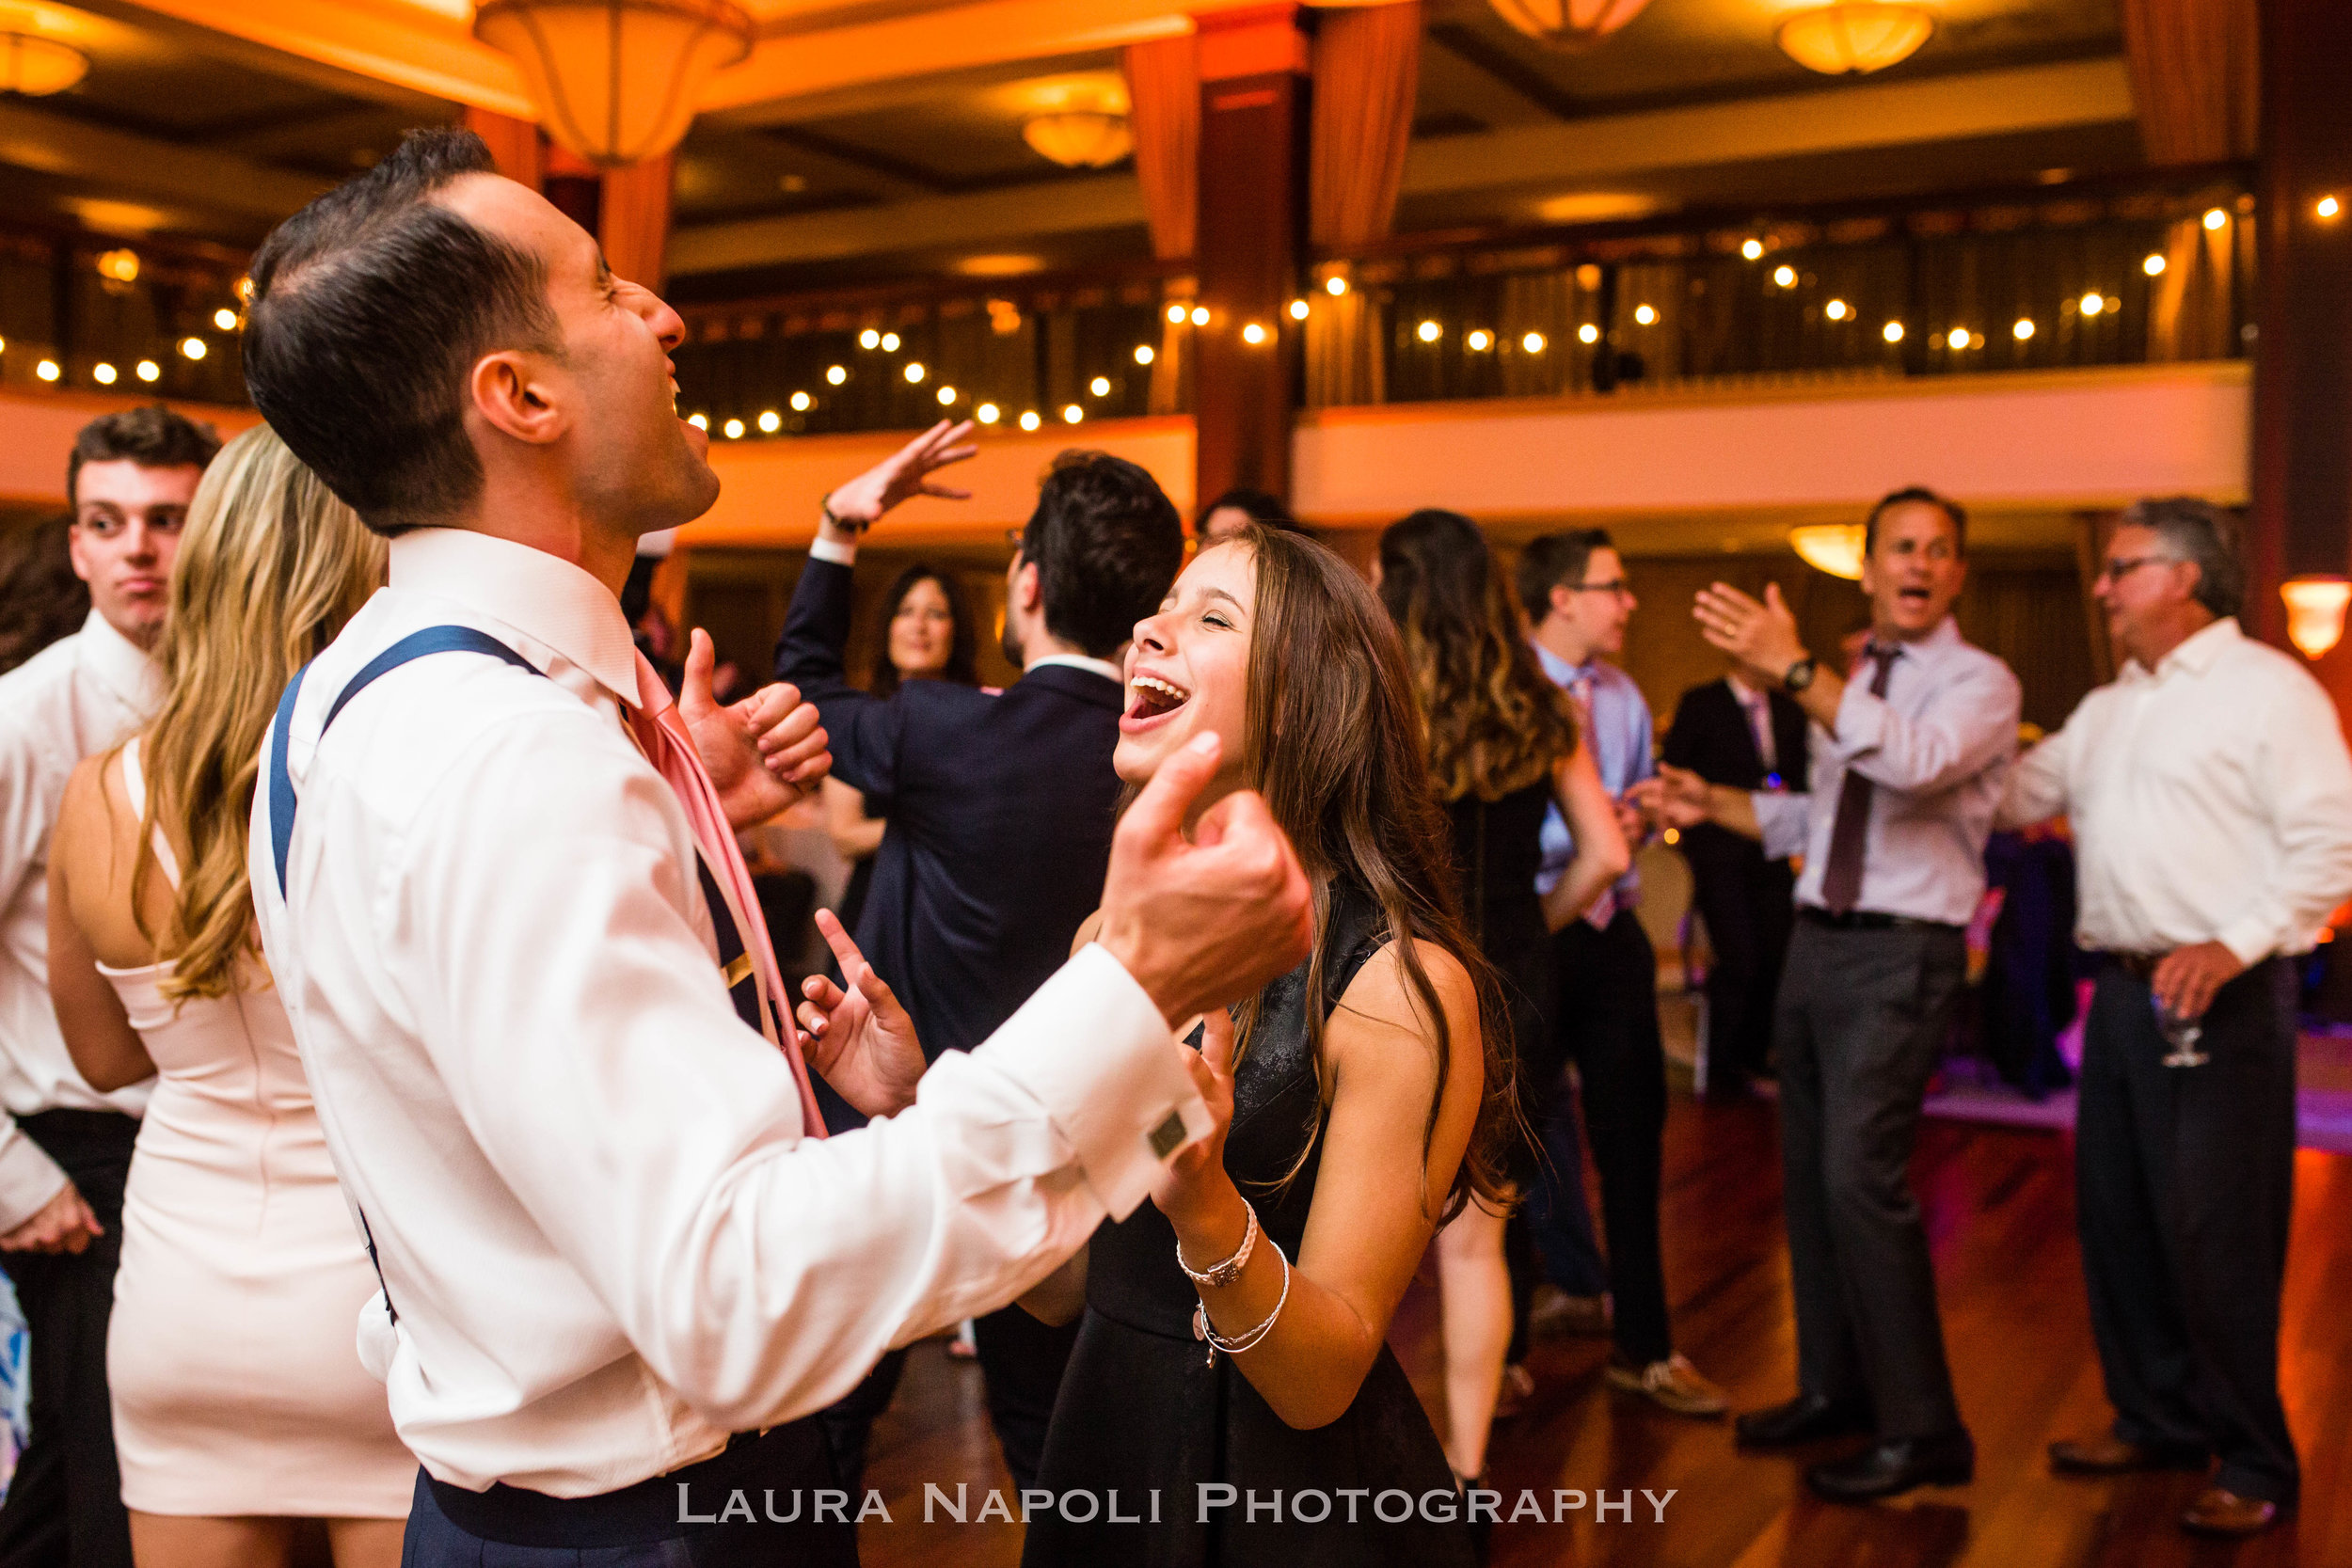 collingswoodballroomweddingsouthjerseyweddingphotographer-54.jpg